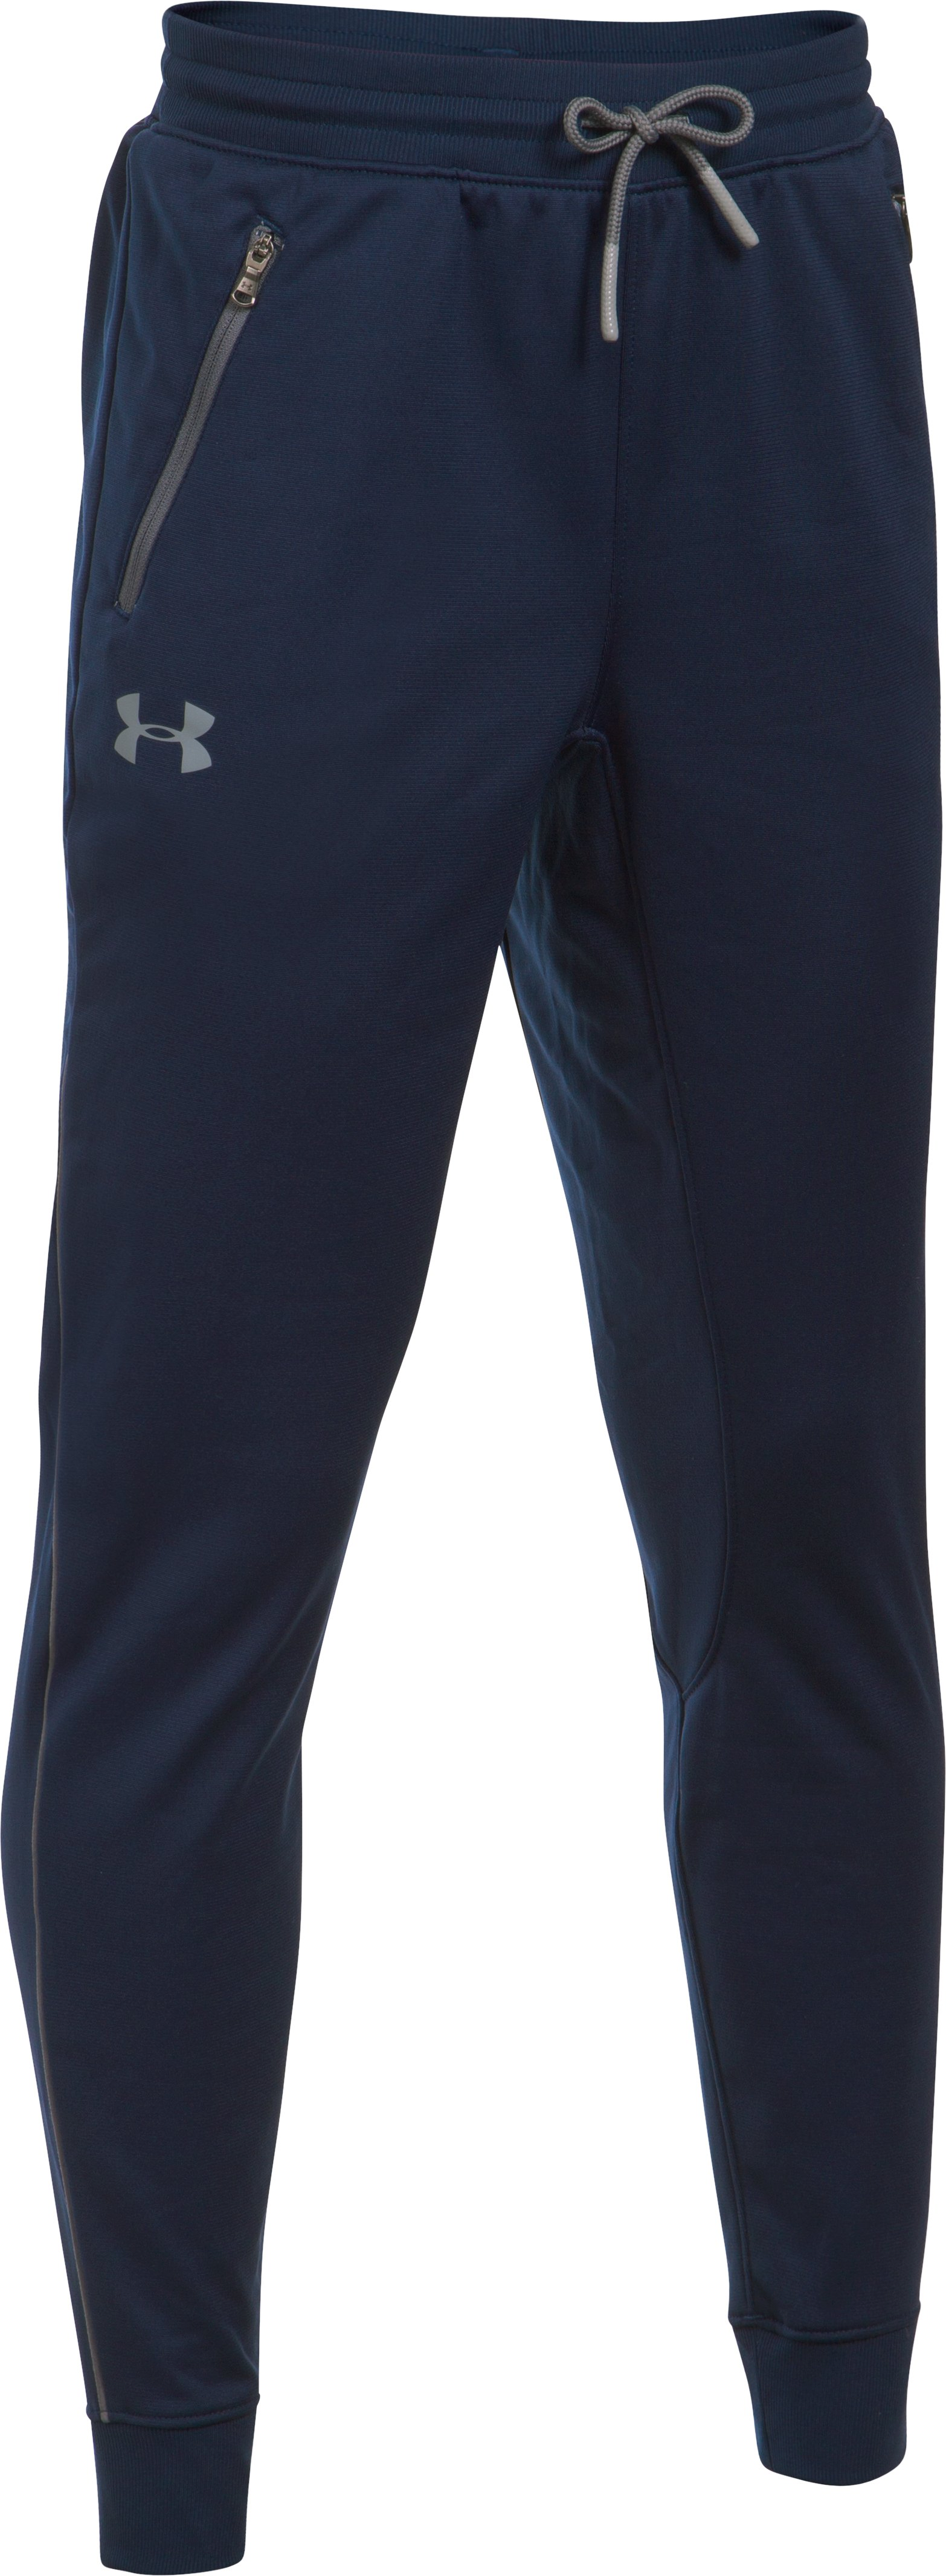 midnight navy pants Boys' UA Pennant Tapered Pants Good fit!...I luv em!...Best pants ever!